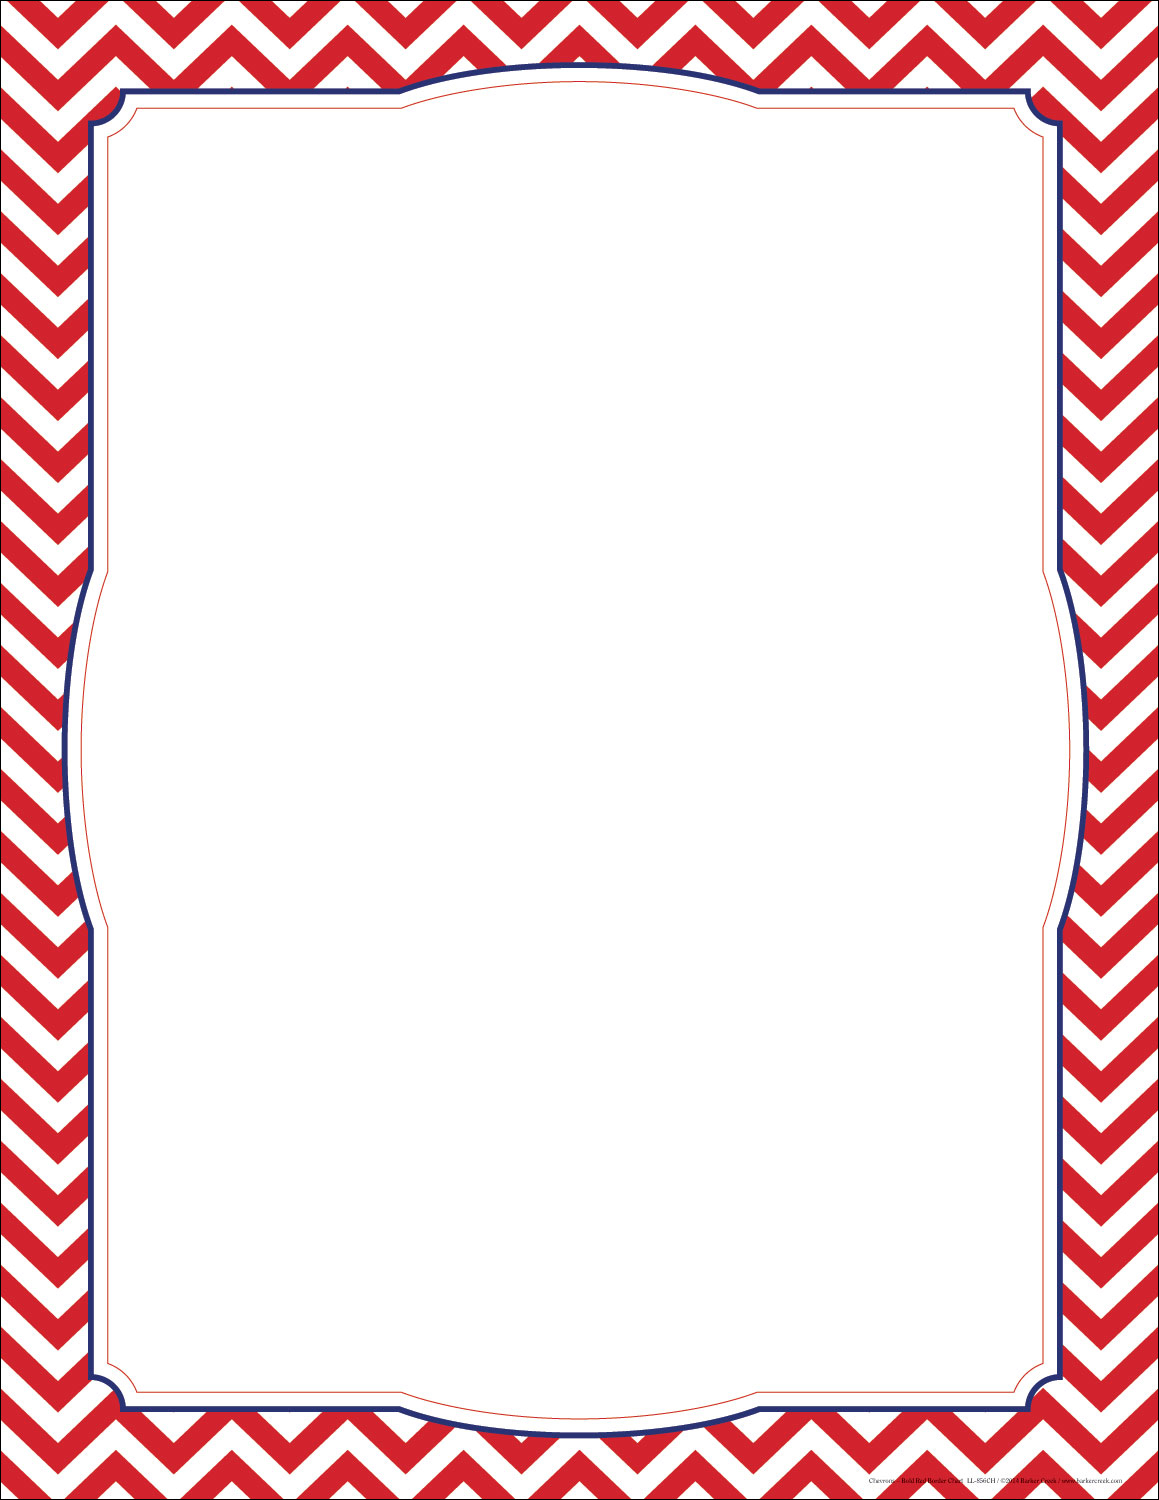 pink chevron border template